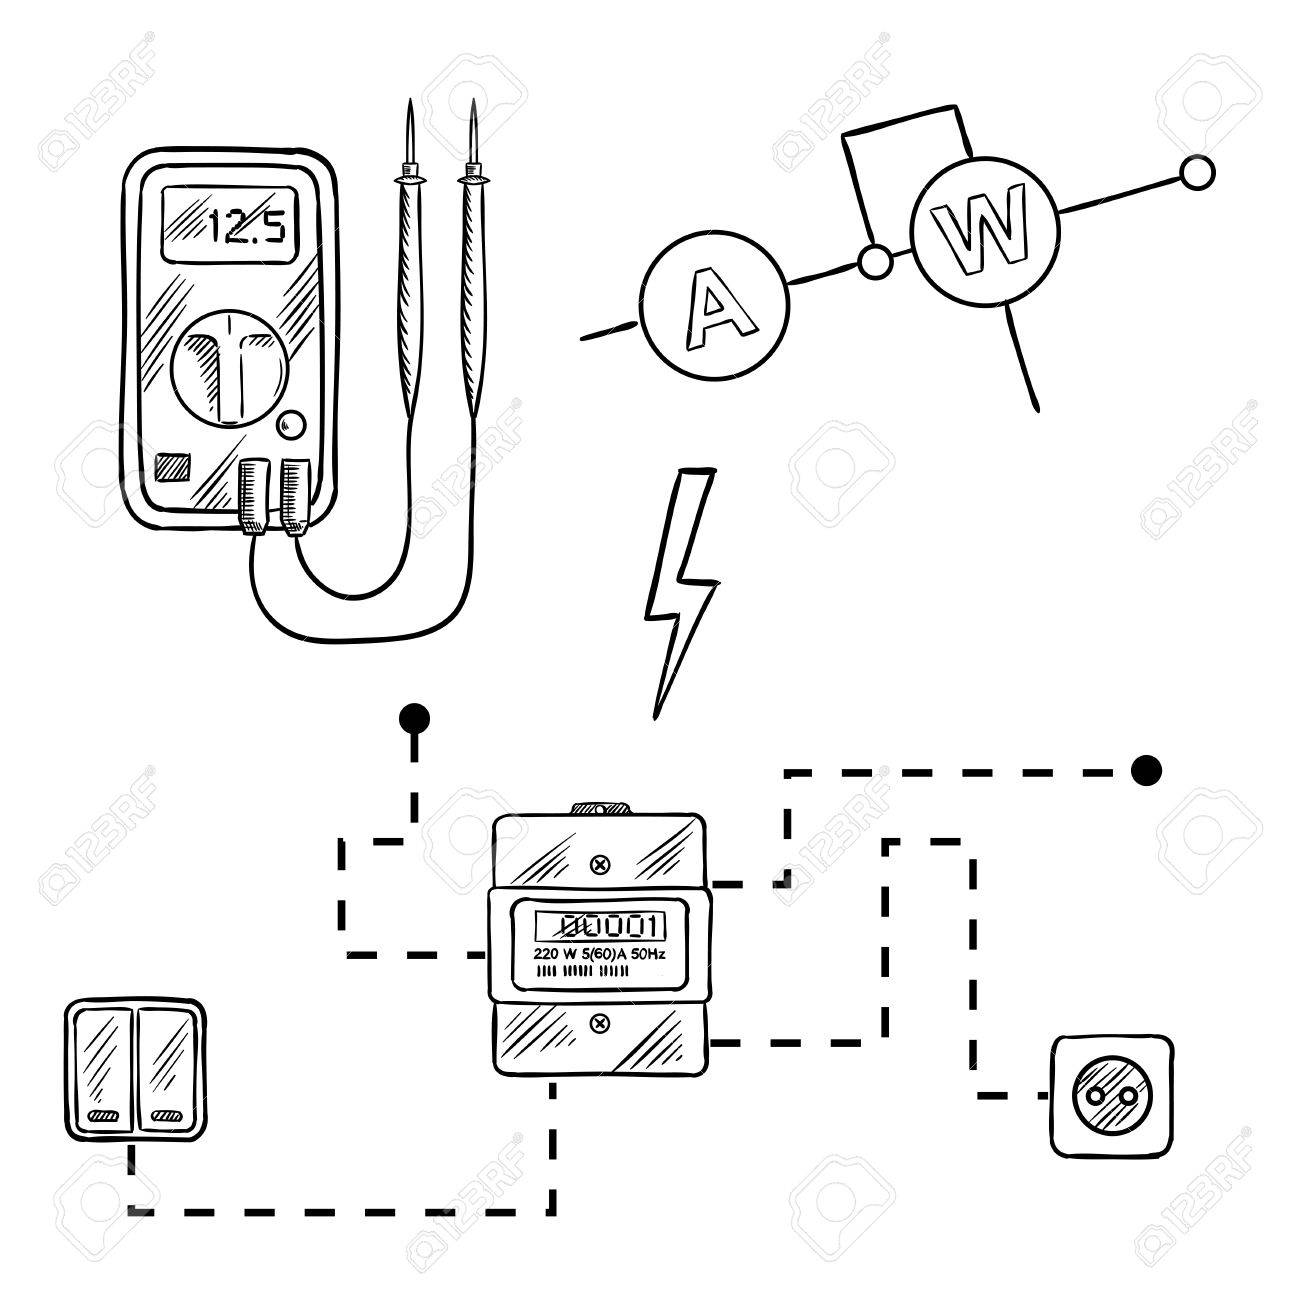 digital voltmeter electricity meter socket and switches digital voltmeter electricity meter socket and switches electrical circuit diagram sketch icons